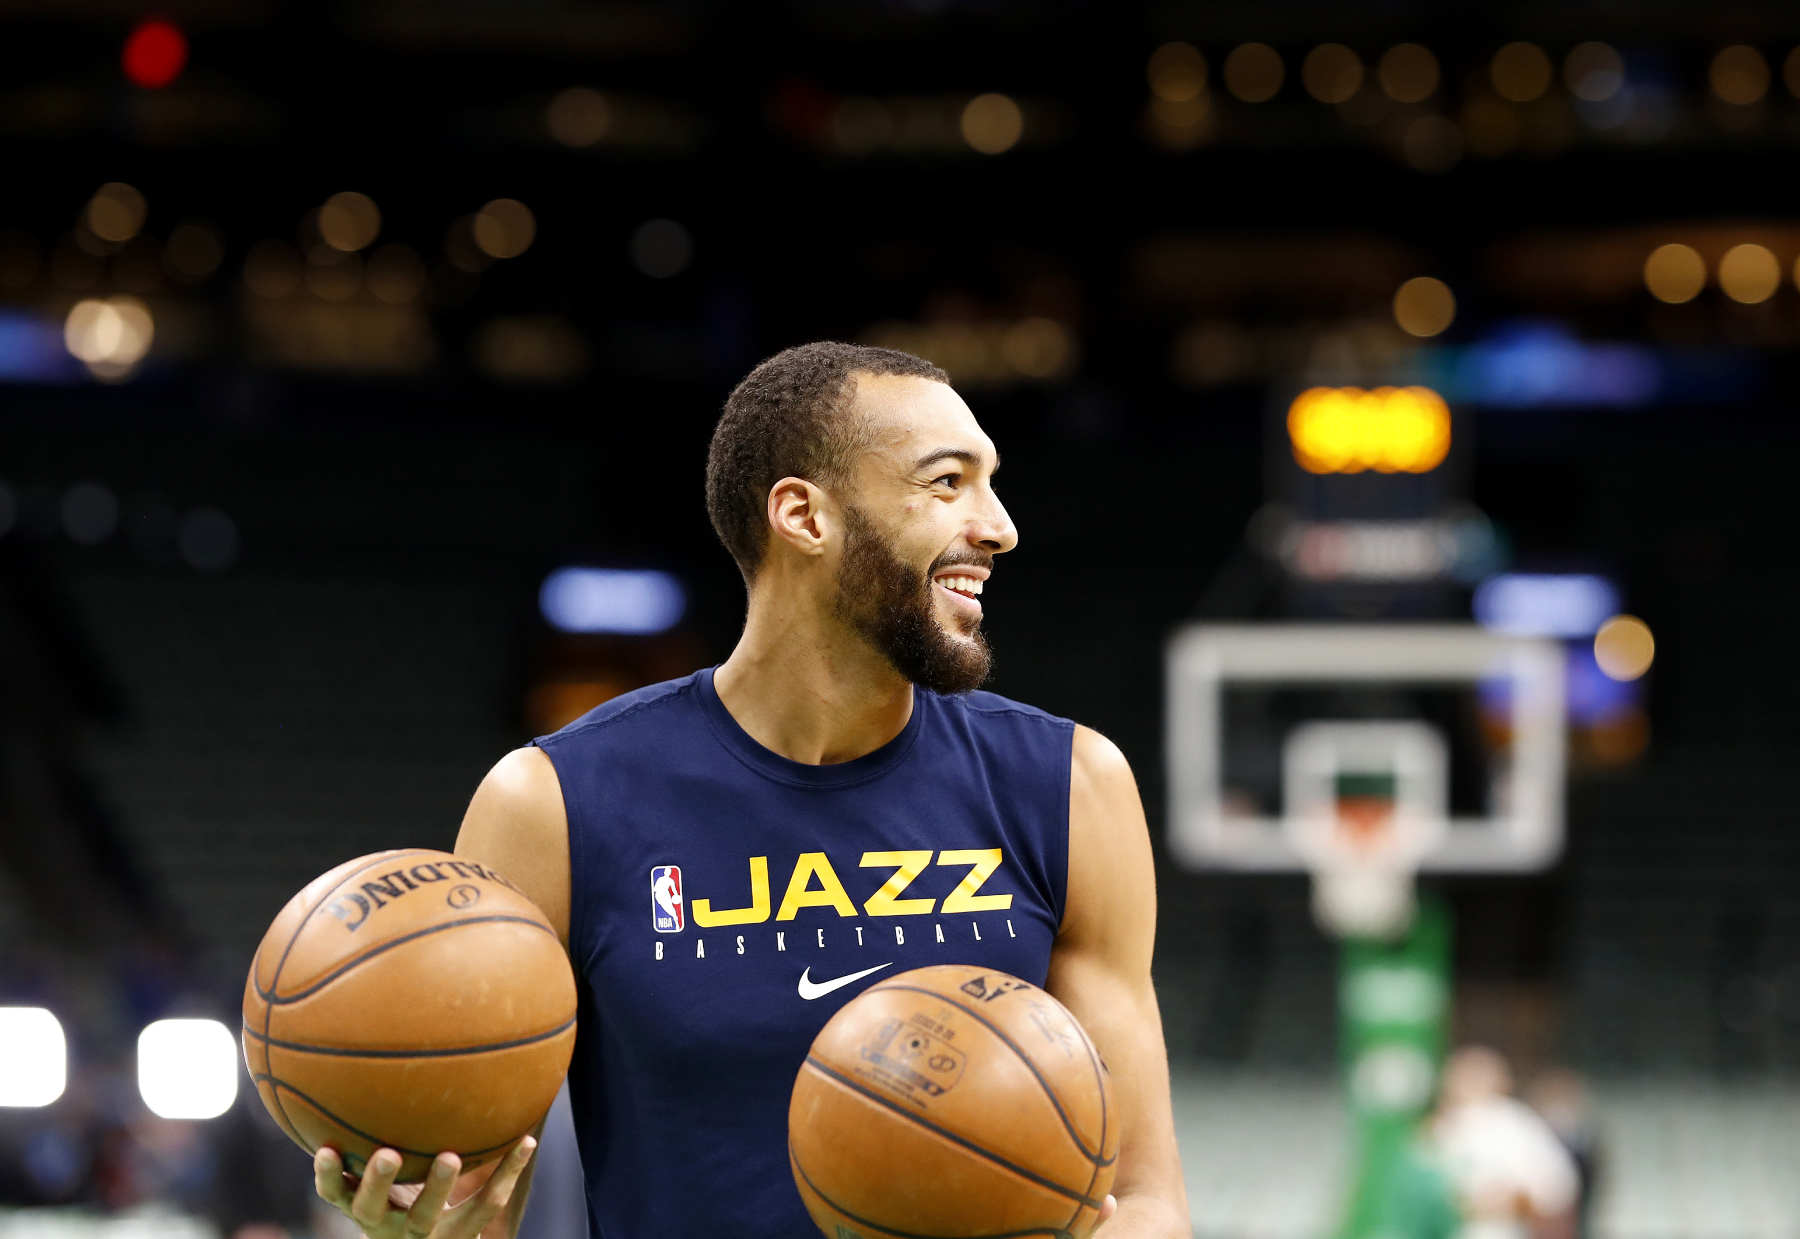 Rudy Gobert has become a top big man in the NBA for the Utah Jazz. He, however, was traded by the Denver Nuggets for an irrelevant player.